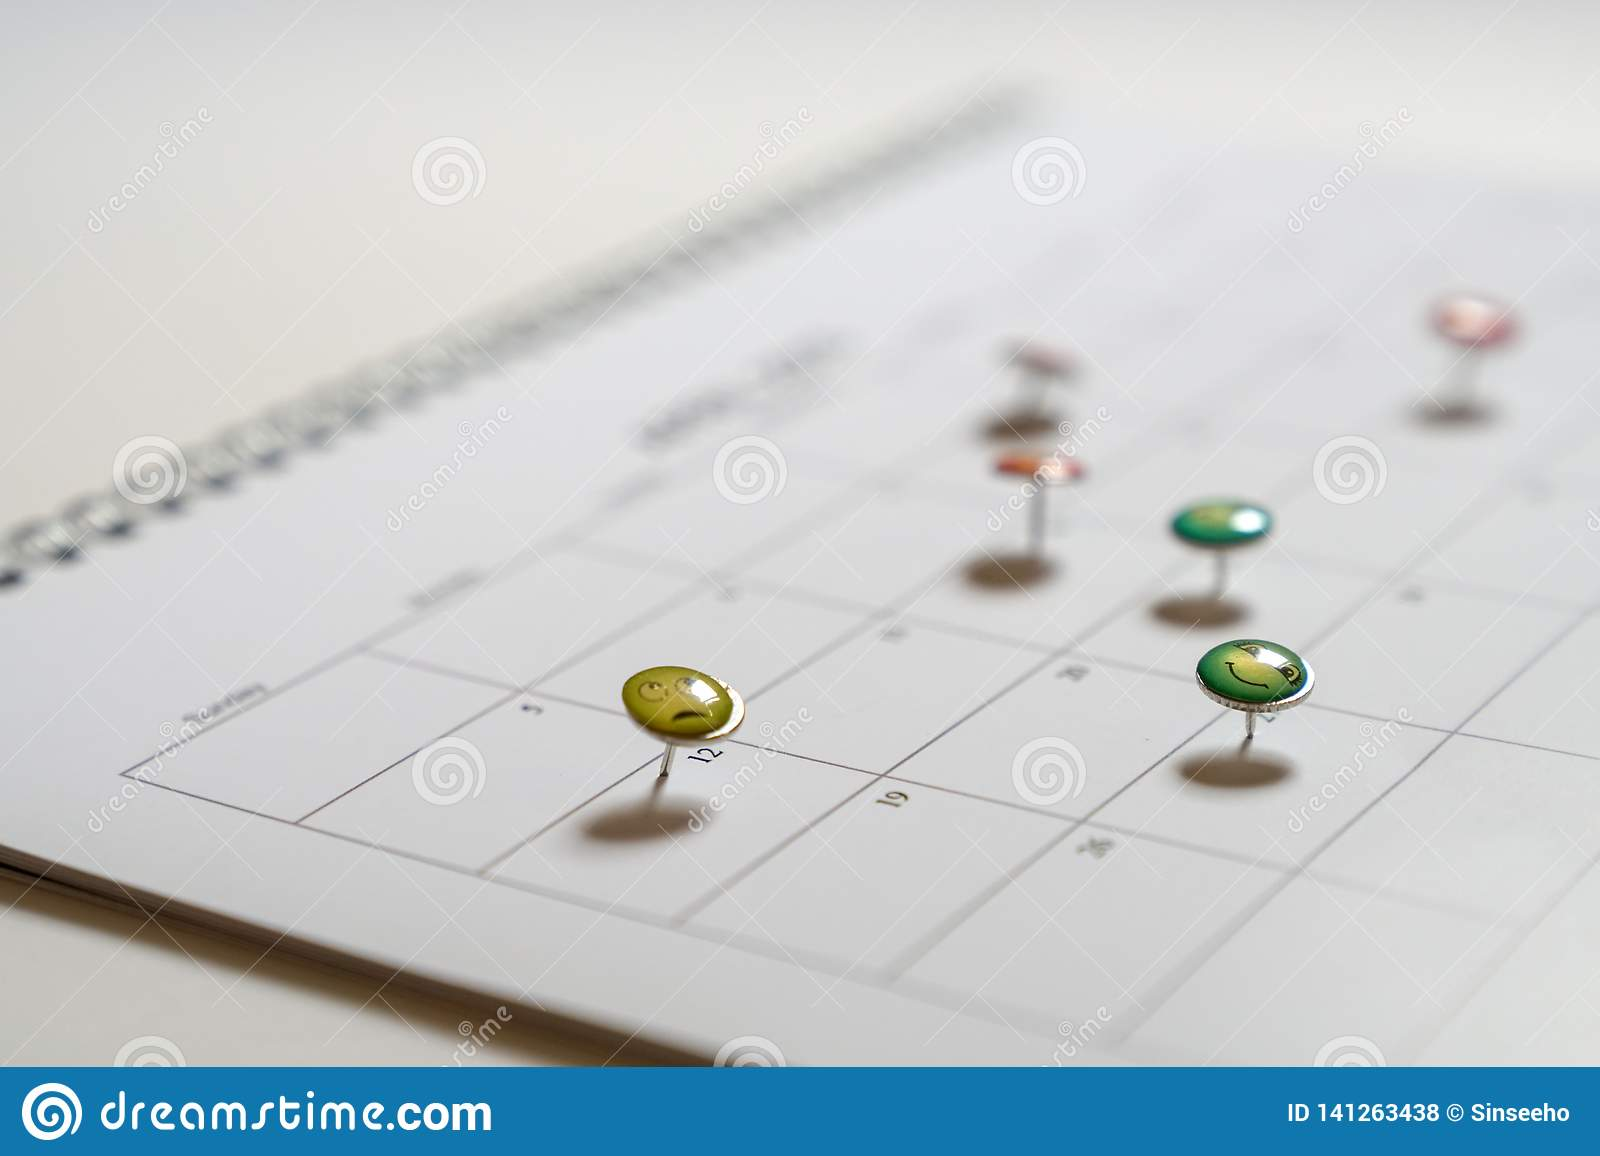 Business concept: thumbtack in calendar as reminders for meetings and appointments